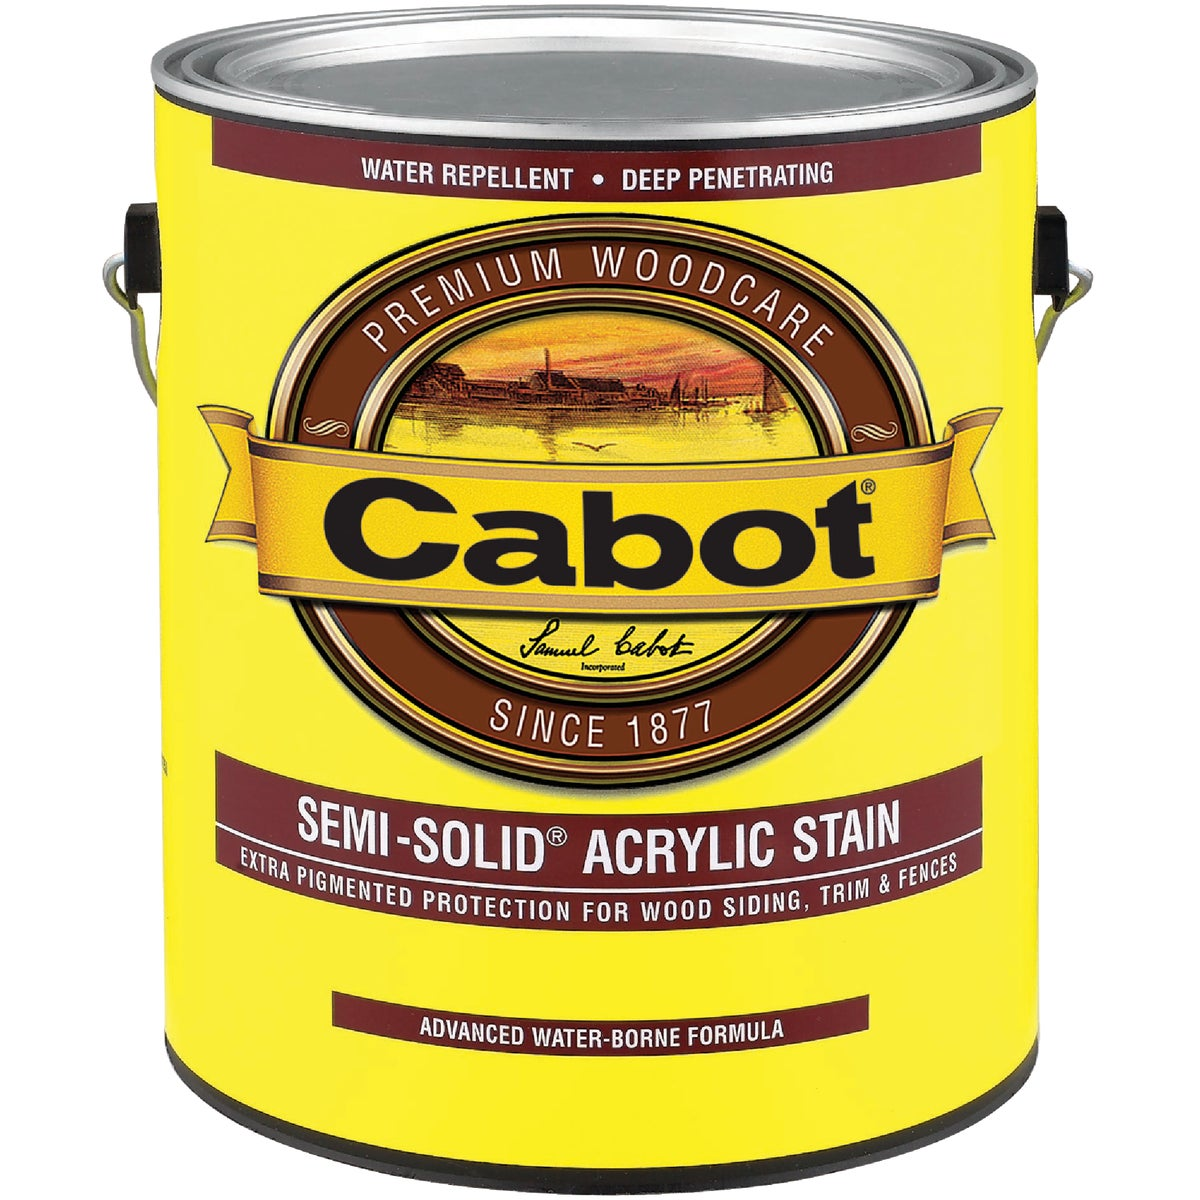 NEUT BS SEMI-SOLID STAIN - 140.0001106.007 by Valspar Corp